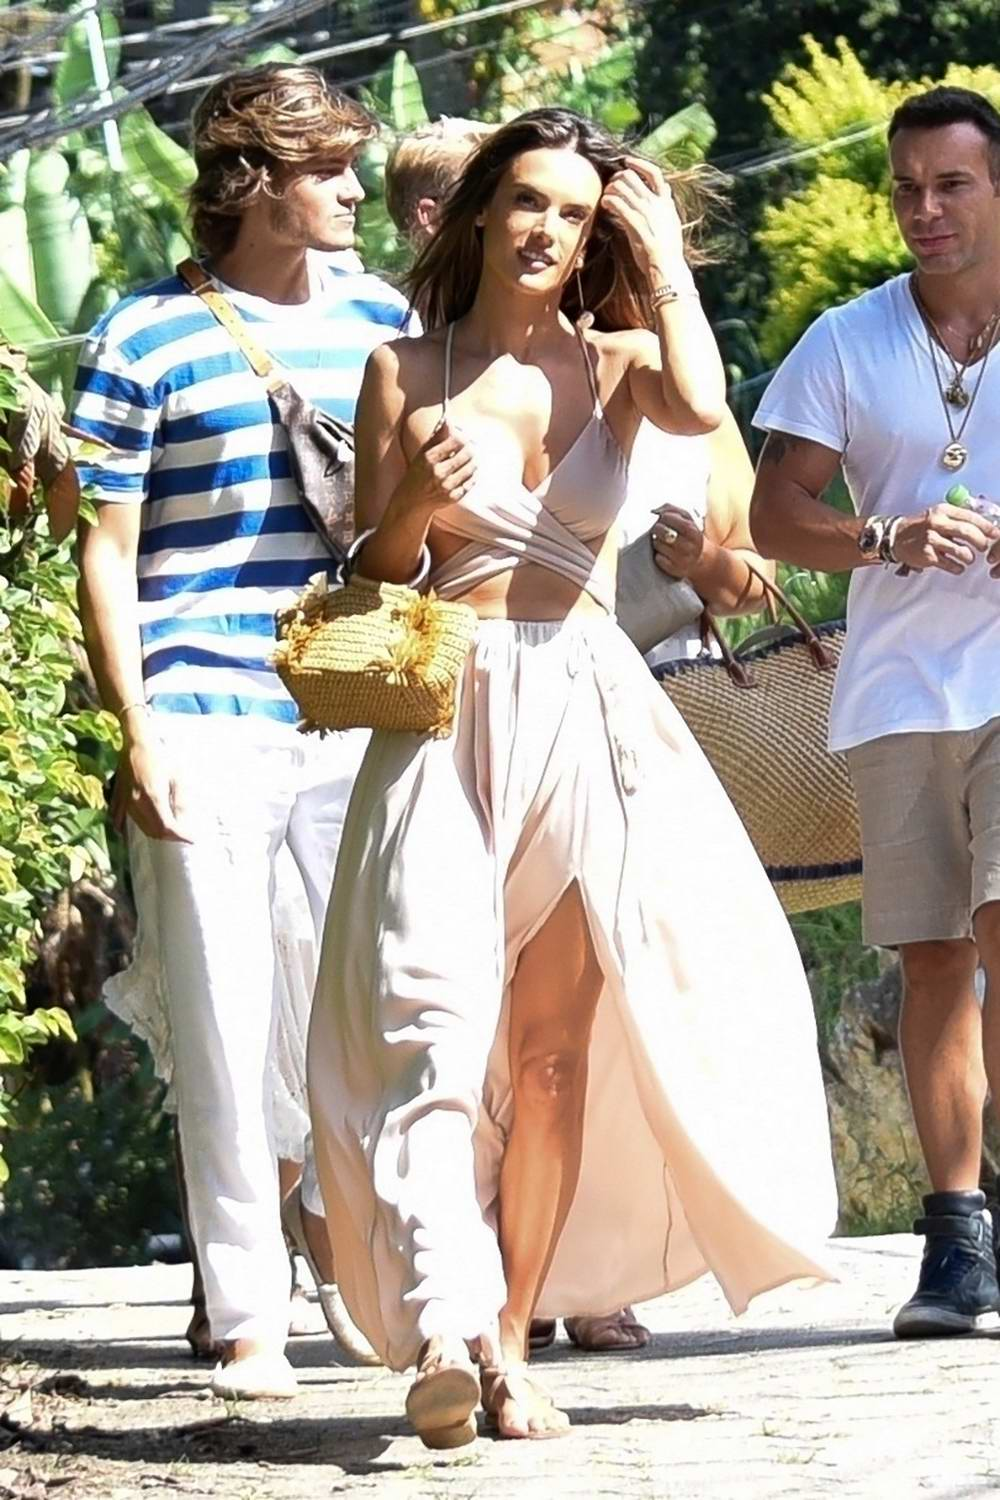 Alessandra Ambrosio steps out with friends in Florianópolis, Brazil